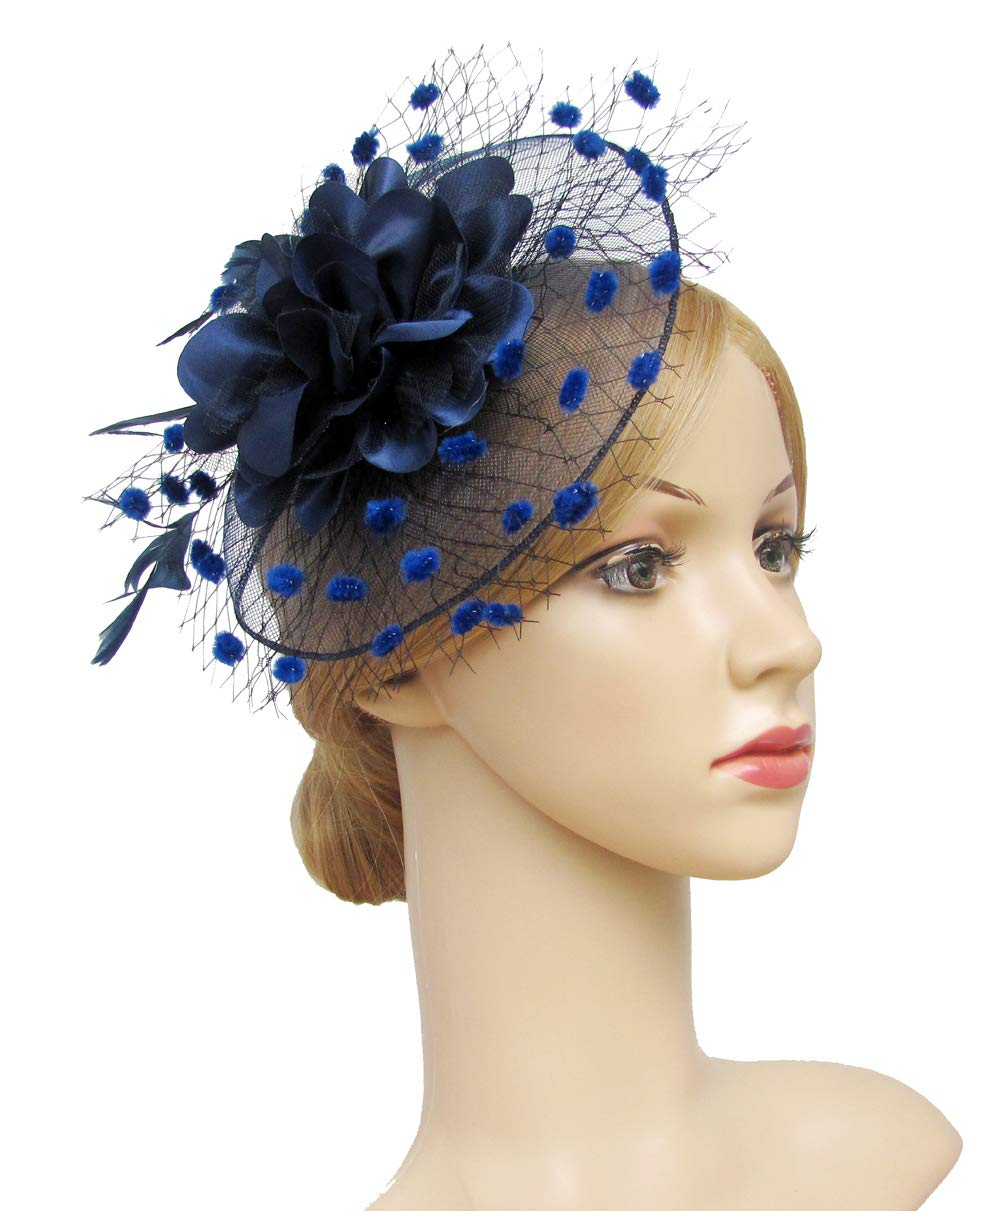 K.CLASSIC Fascinators Hats for Womens 50s Headwear with Veil Flower Cocktail Tea Party Headwear(A-Navy)